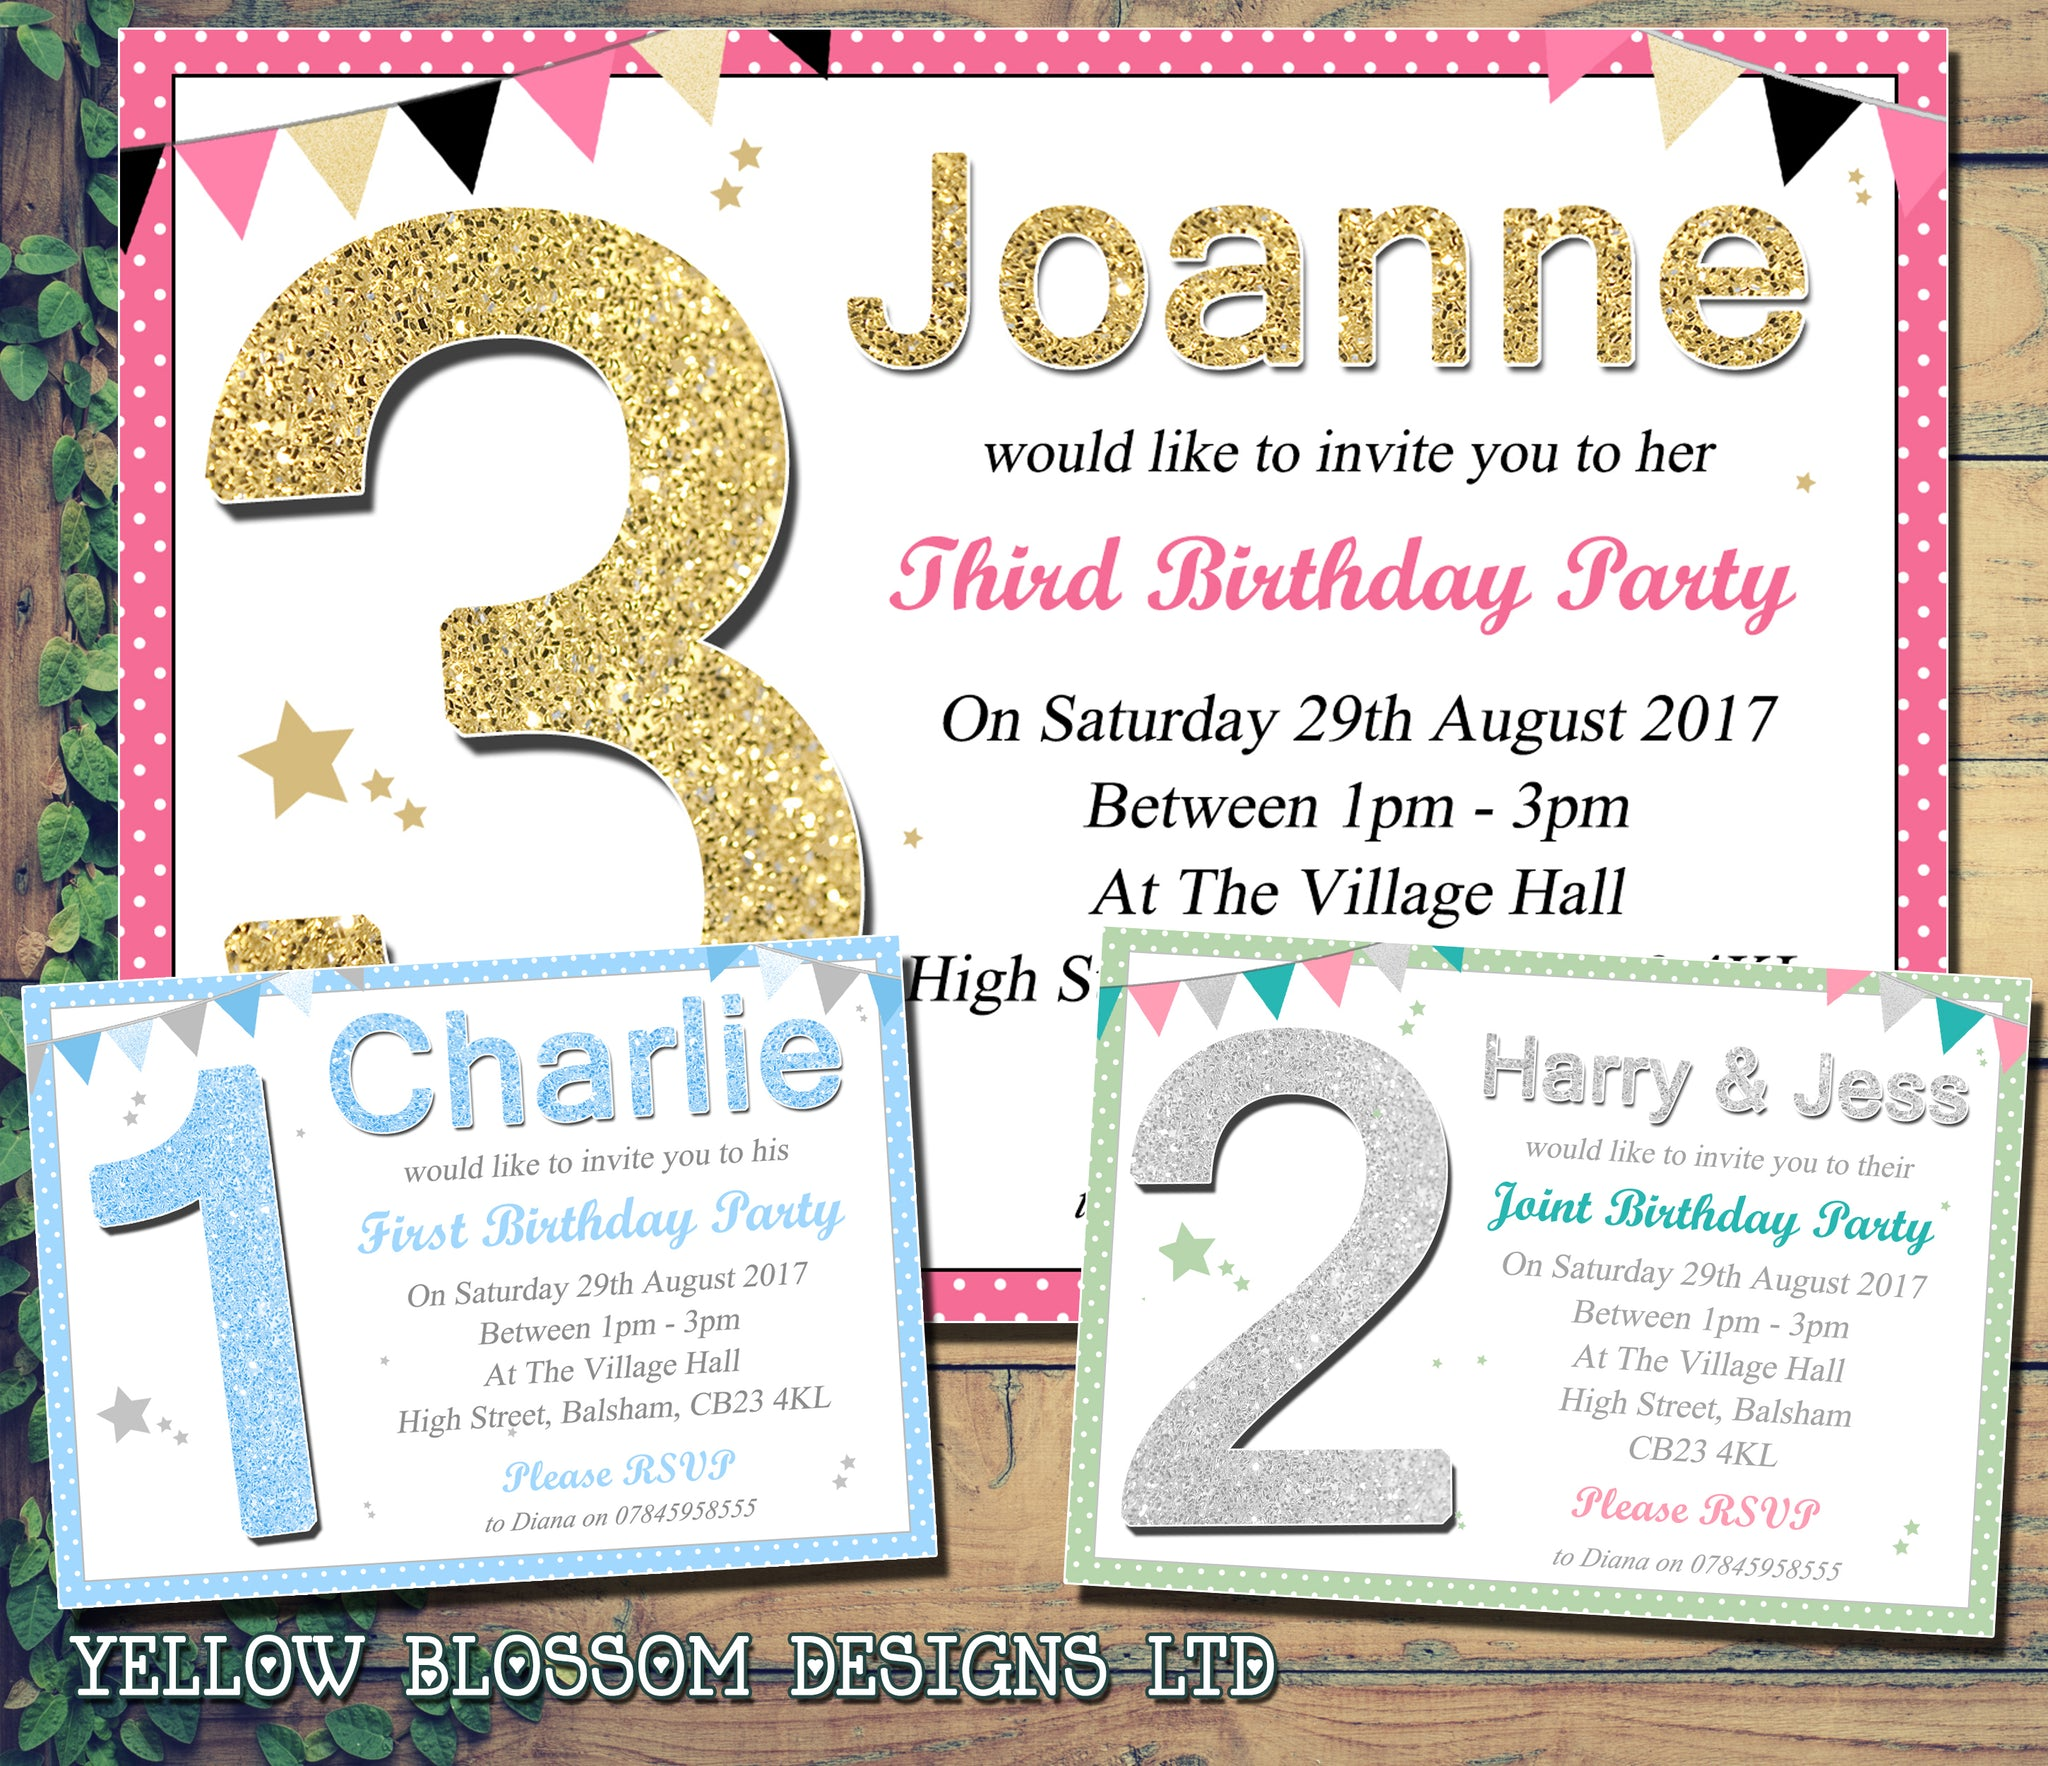 Childrens birthday invitations yellowblossomdesignsltd party invitations birthday invites boy girl joint party twins unisex printed childrens kids child stopboris Image collections